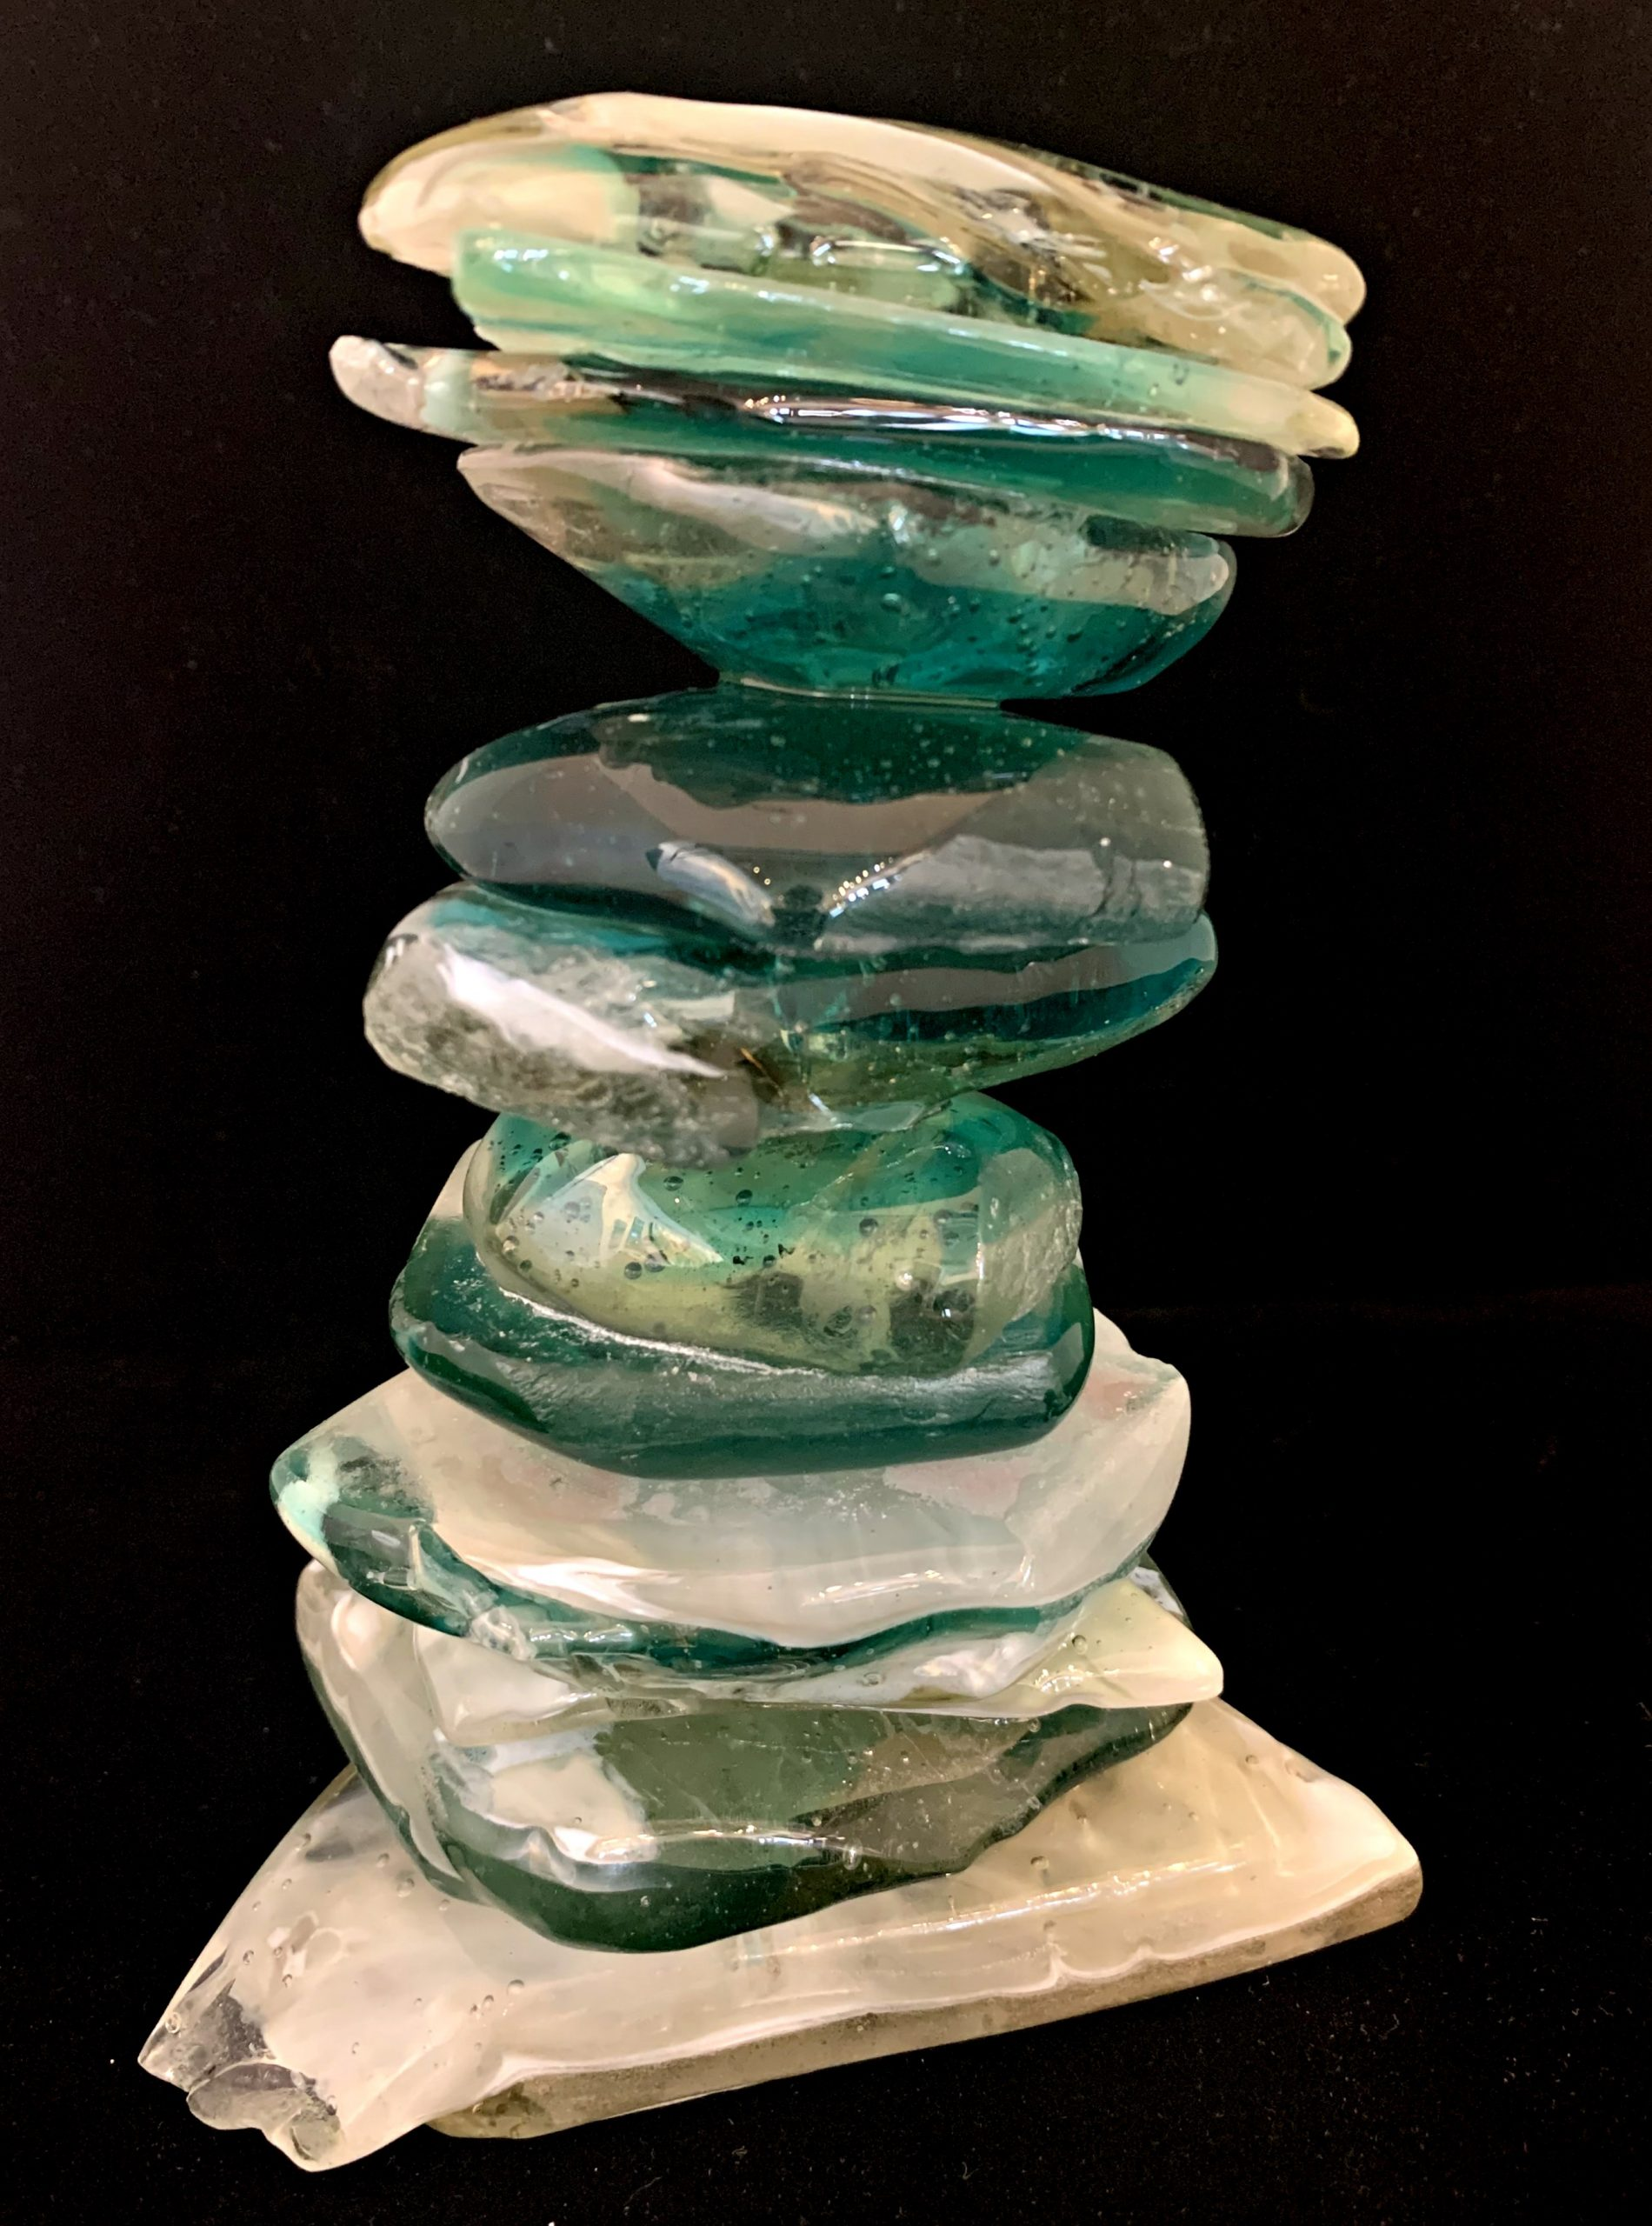 Cast Glass Cairn Sculpture #56 by Heather Cuell | Effusion Art Gallery + Cast Glass Studio, Invermere BC